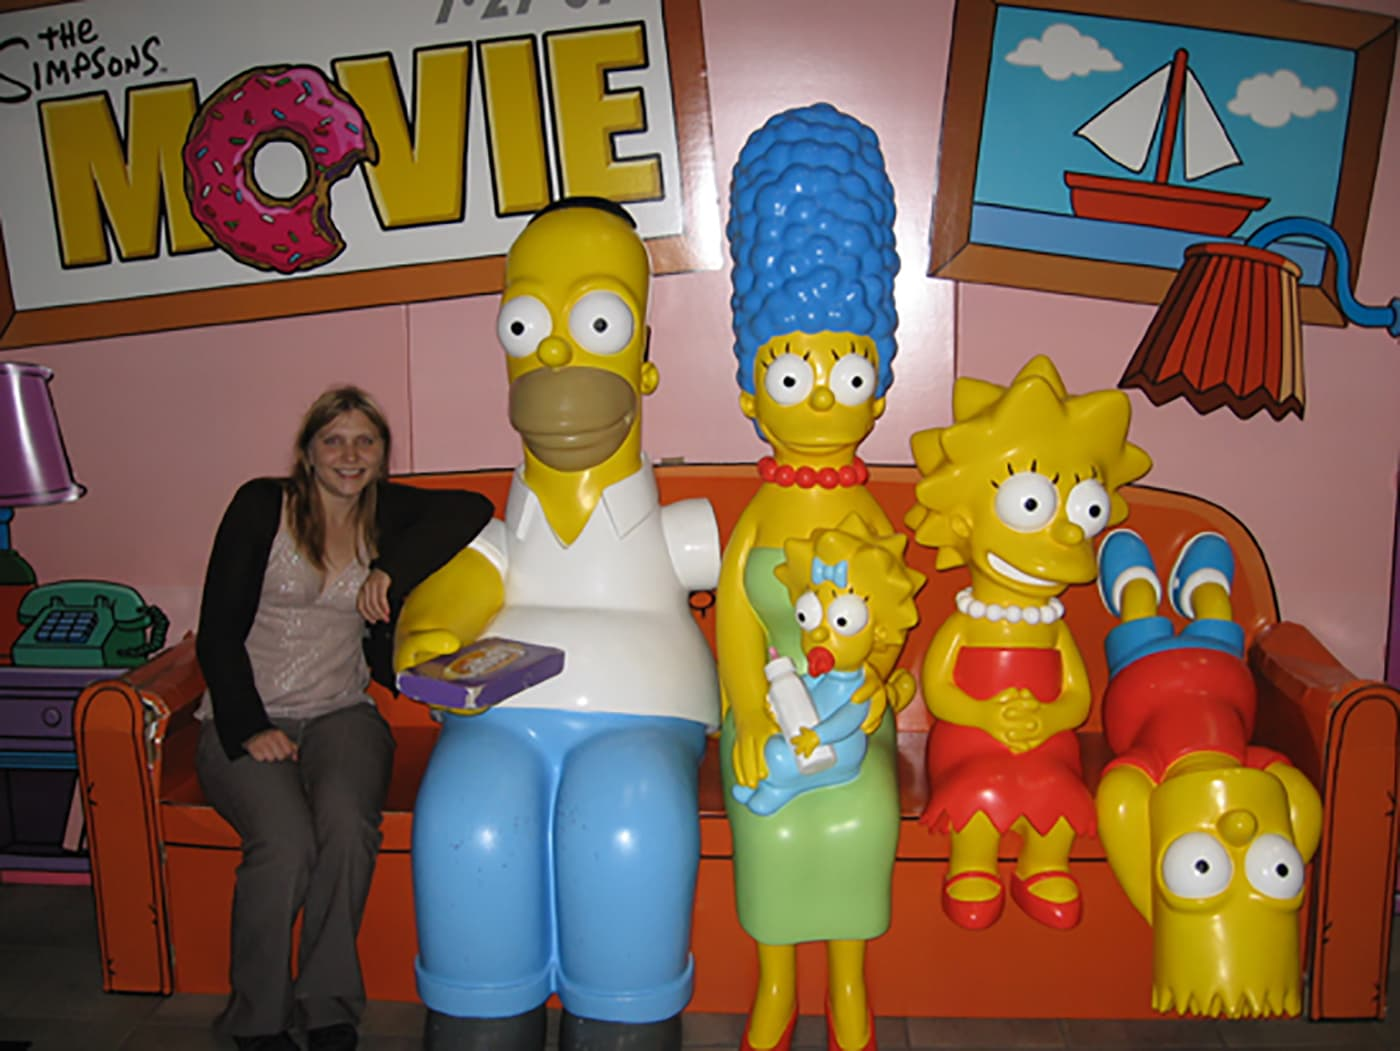 The Simpsons Family On Their Couch Silly America